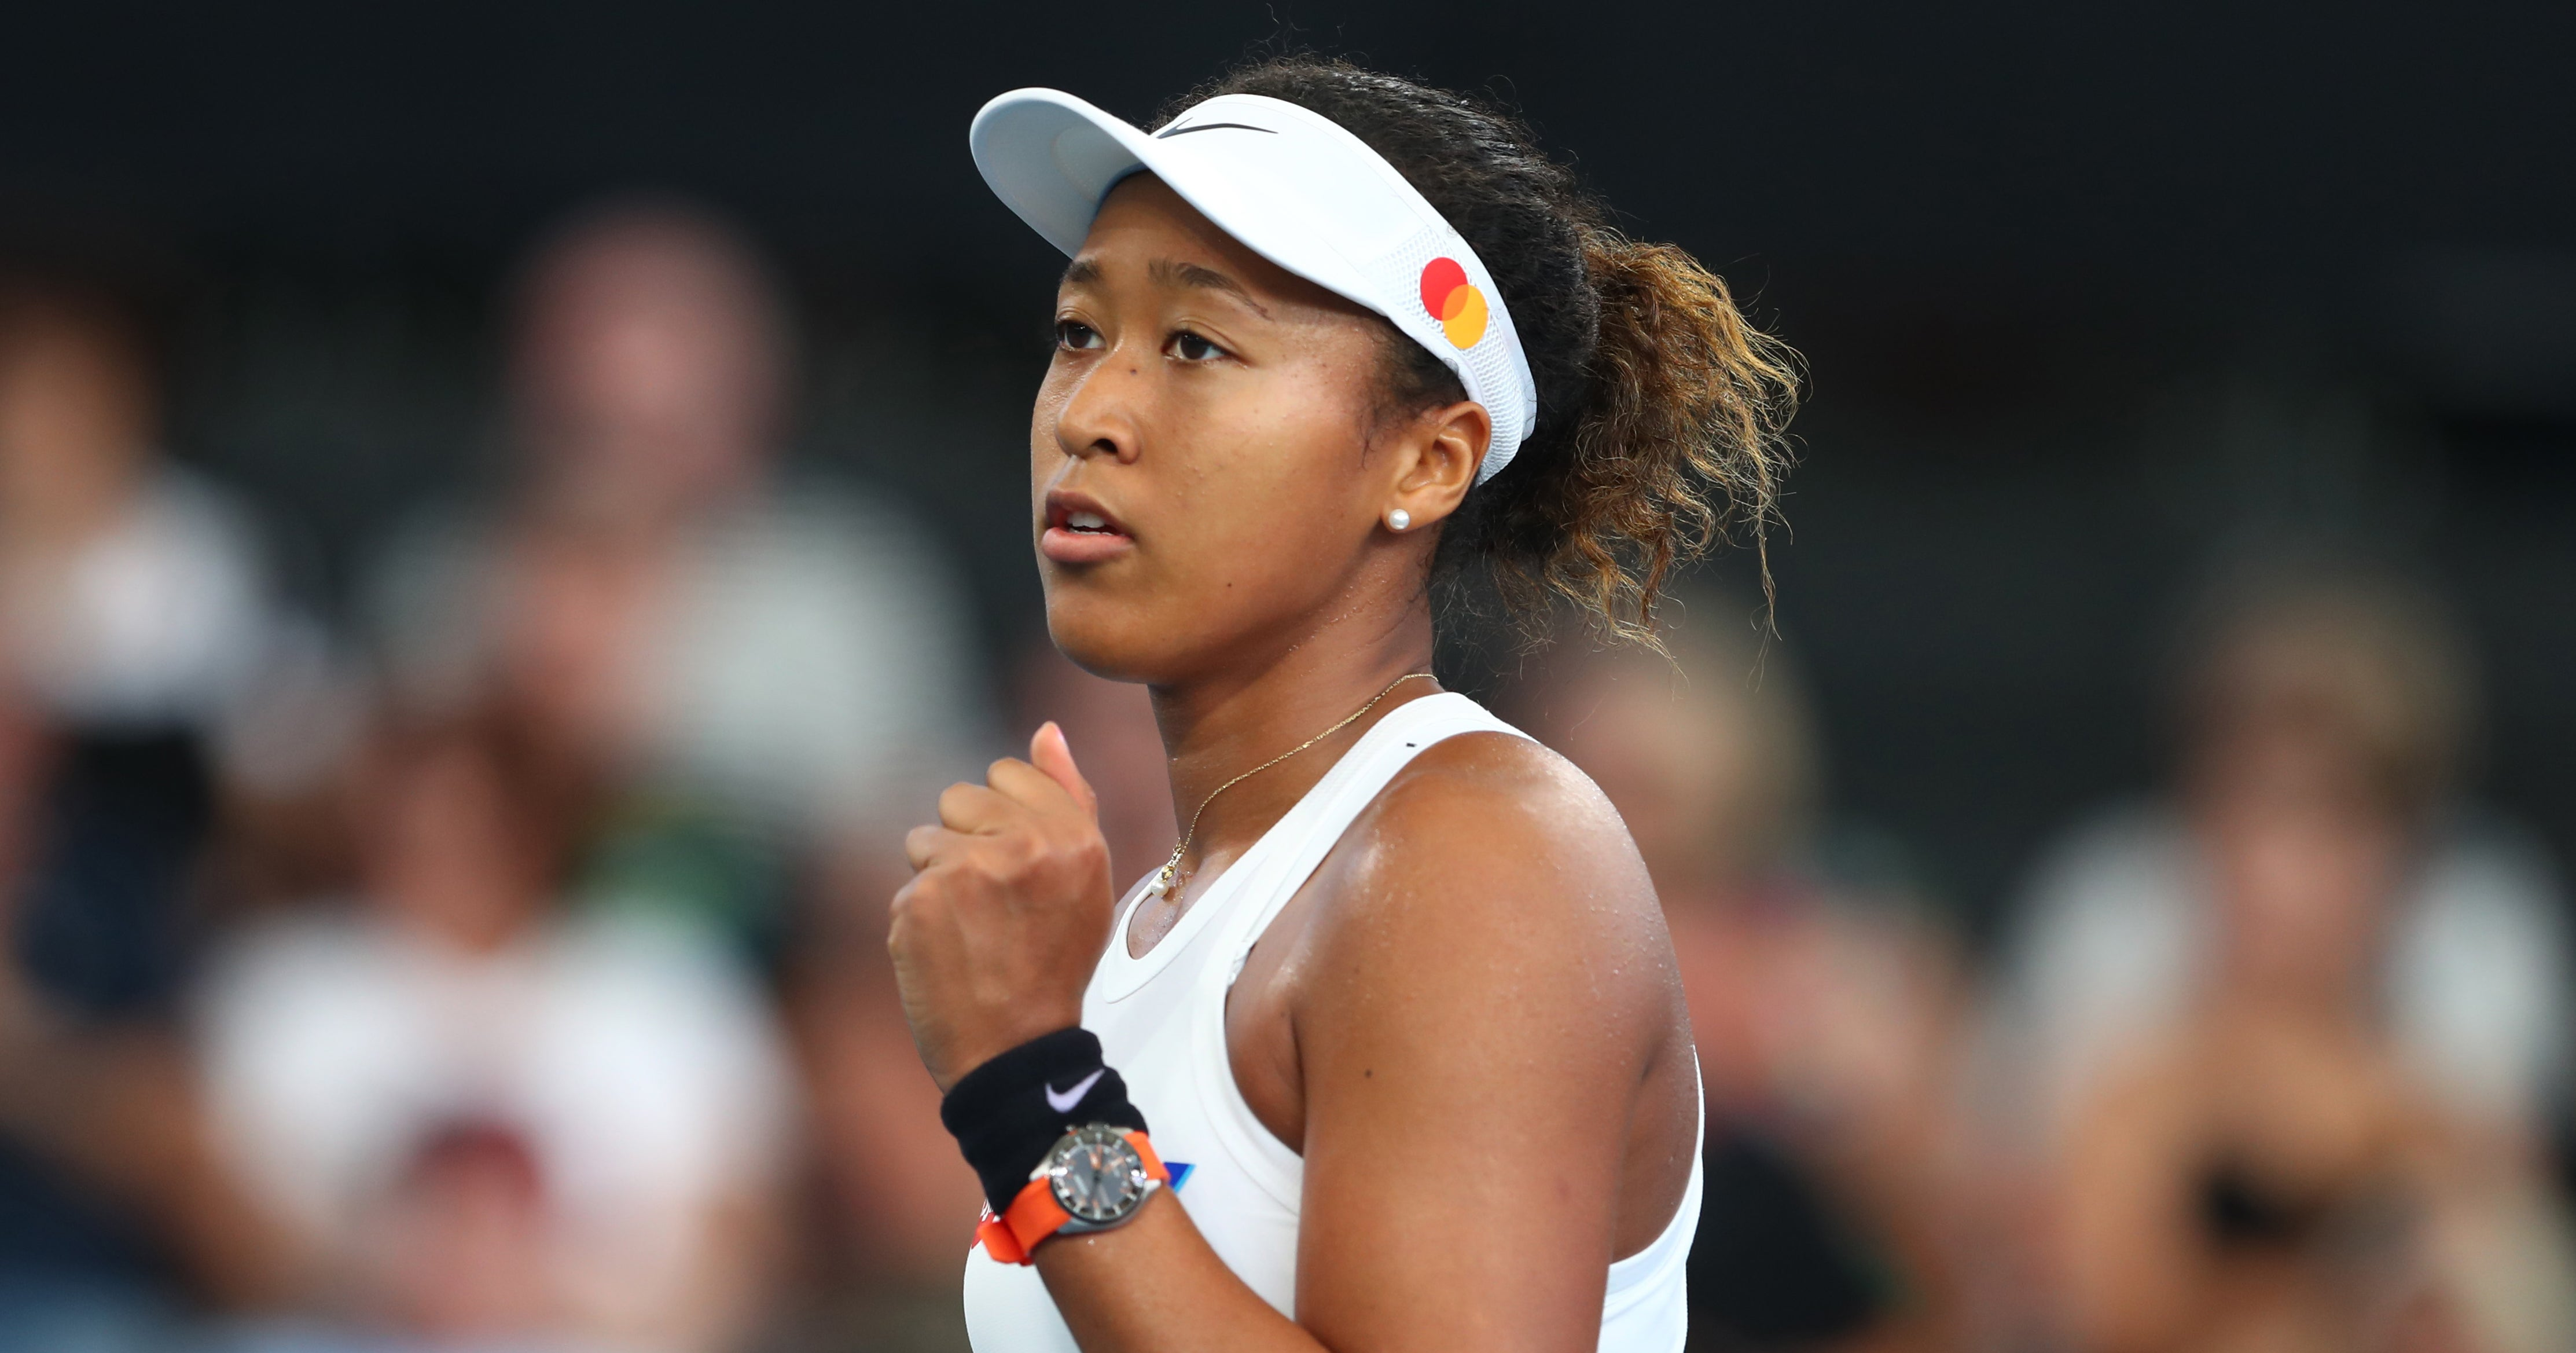 Naomi Osaka's Post-Match Hairstyle Is More Important Than You Think